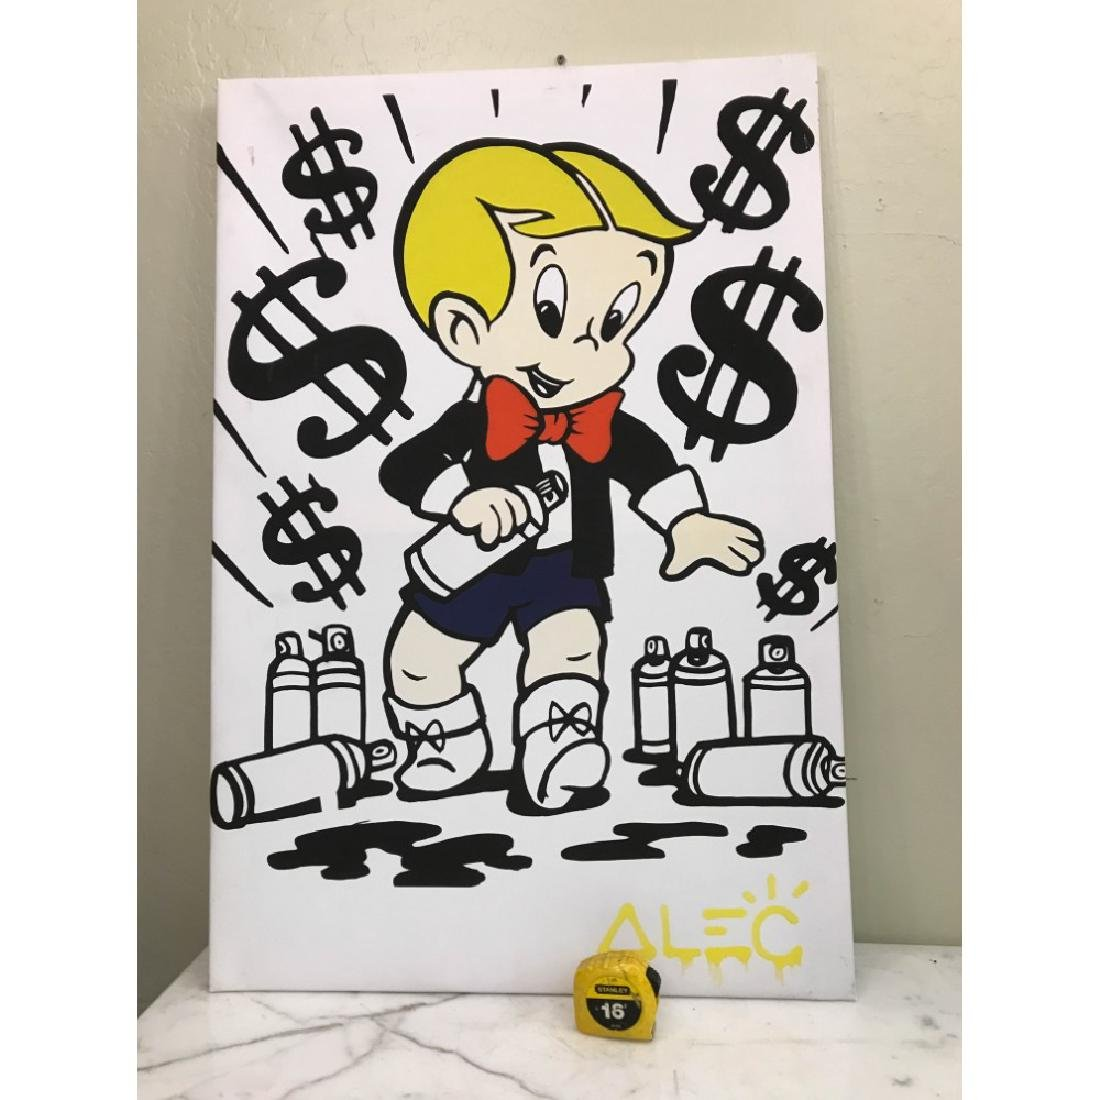 Alec Monopoly's Rich with Spray Paint Print - 8